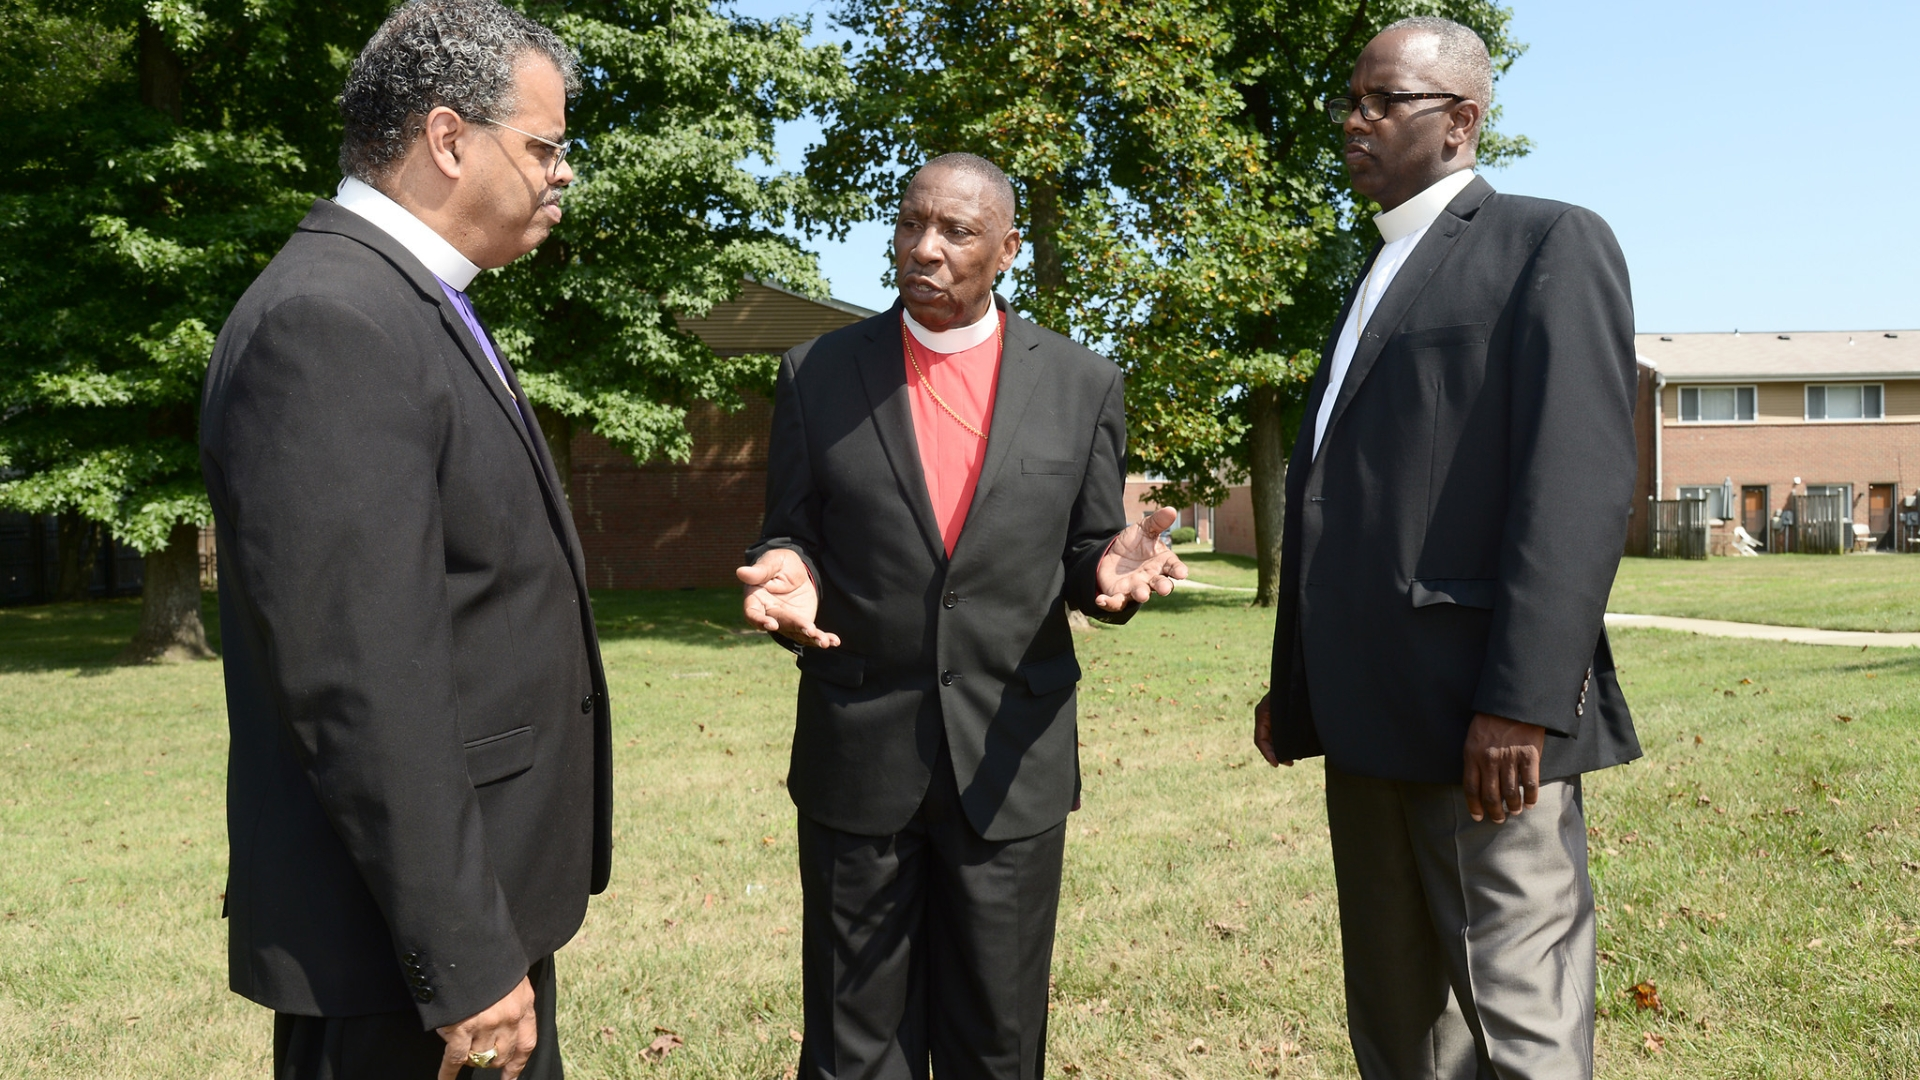 Pastor calls attention to his son's killing on second